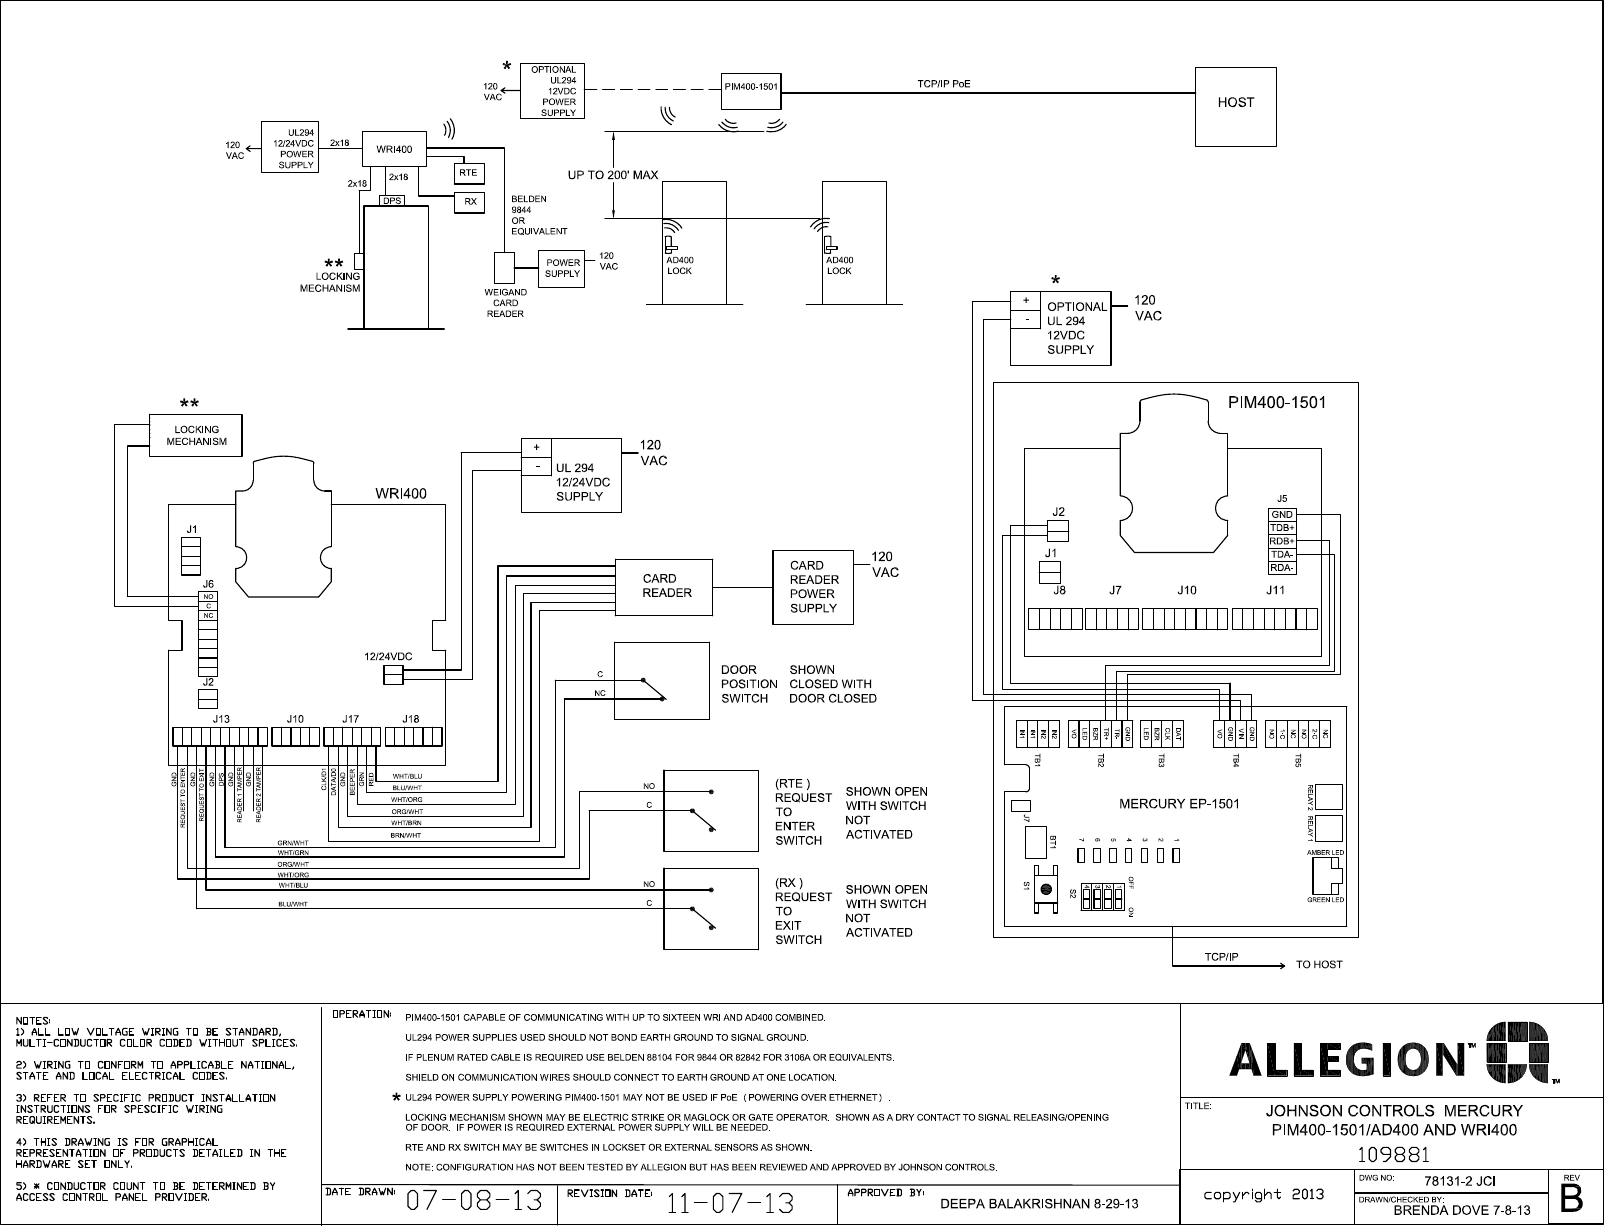 schlage electronics c ad ad400 wiring diagram johnson controls wri 400 pim400 1501 rs485 109881